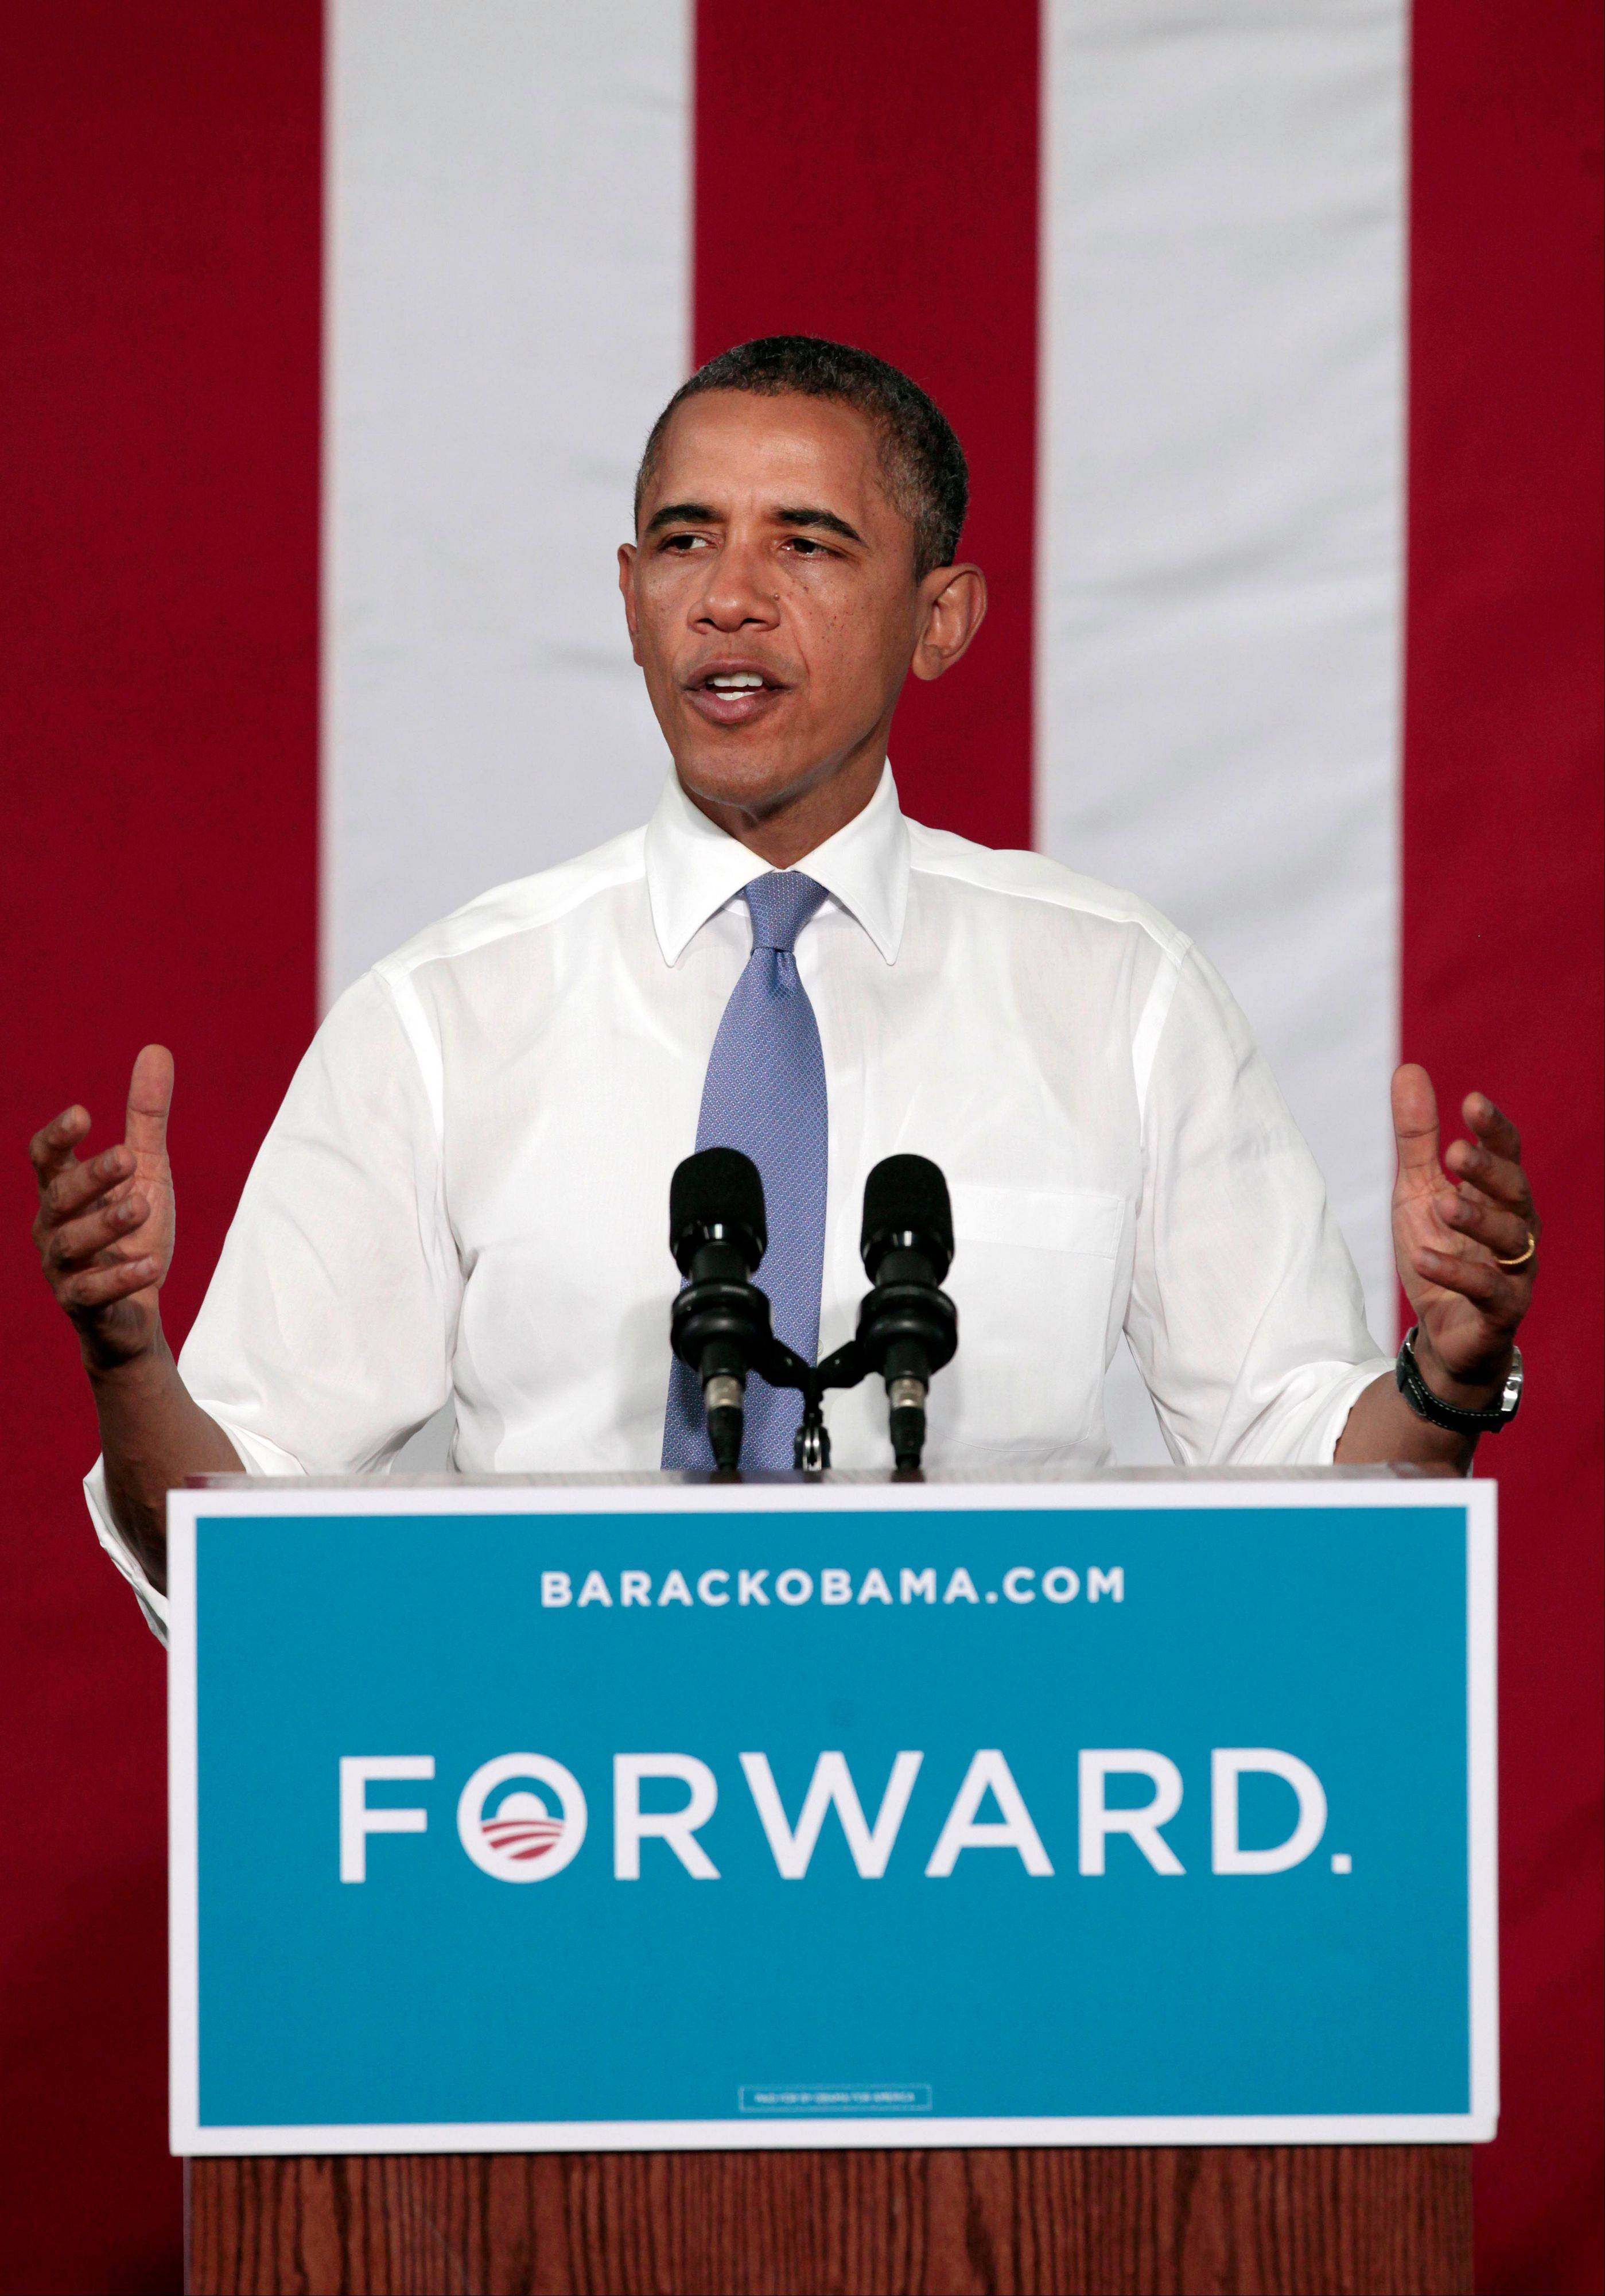 President Barack Obama speaks during a campaign event at Truckee Meadows Community College, Tuesday, Aug. 21, 2012, in Reno, Nev.